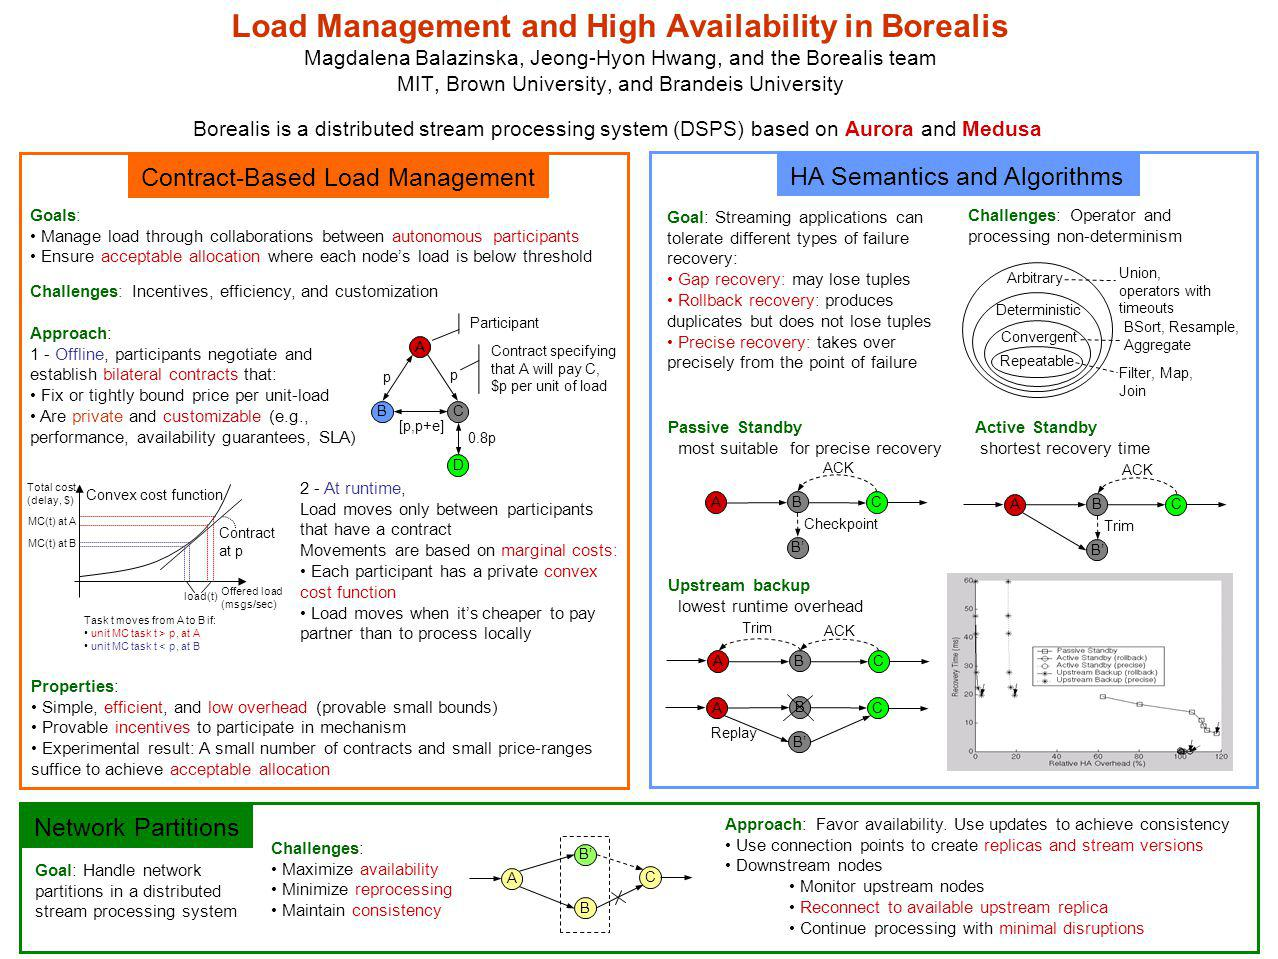 Load Management and High Availability in Borealis Magdalena Balazinska, Jeong-Hyon Hwang, and the Borealis team MIT, Brown University, and Brandeis University Borealis is a distributed stream processing system (DSPS) based on Aurora and Medusa Contract-Based Load Management HA Semantics and Algorithms Network Partitions Approach: 1 - Offline, participants negotiate and establish bilateral contracts that: Fix or tightly bound price per unit-load Are private and customizable (e.g., performance, availability guarantees, SLA) Properties: Simple, efficient, and low overhead (provable small bounds) Provable incentives to participate in mechanism Experimental result: A small number of contracts and small price-ranges suffice to achieve acceptable allocation A C Approach: Favor availability.